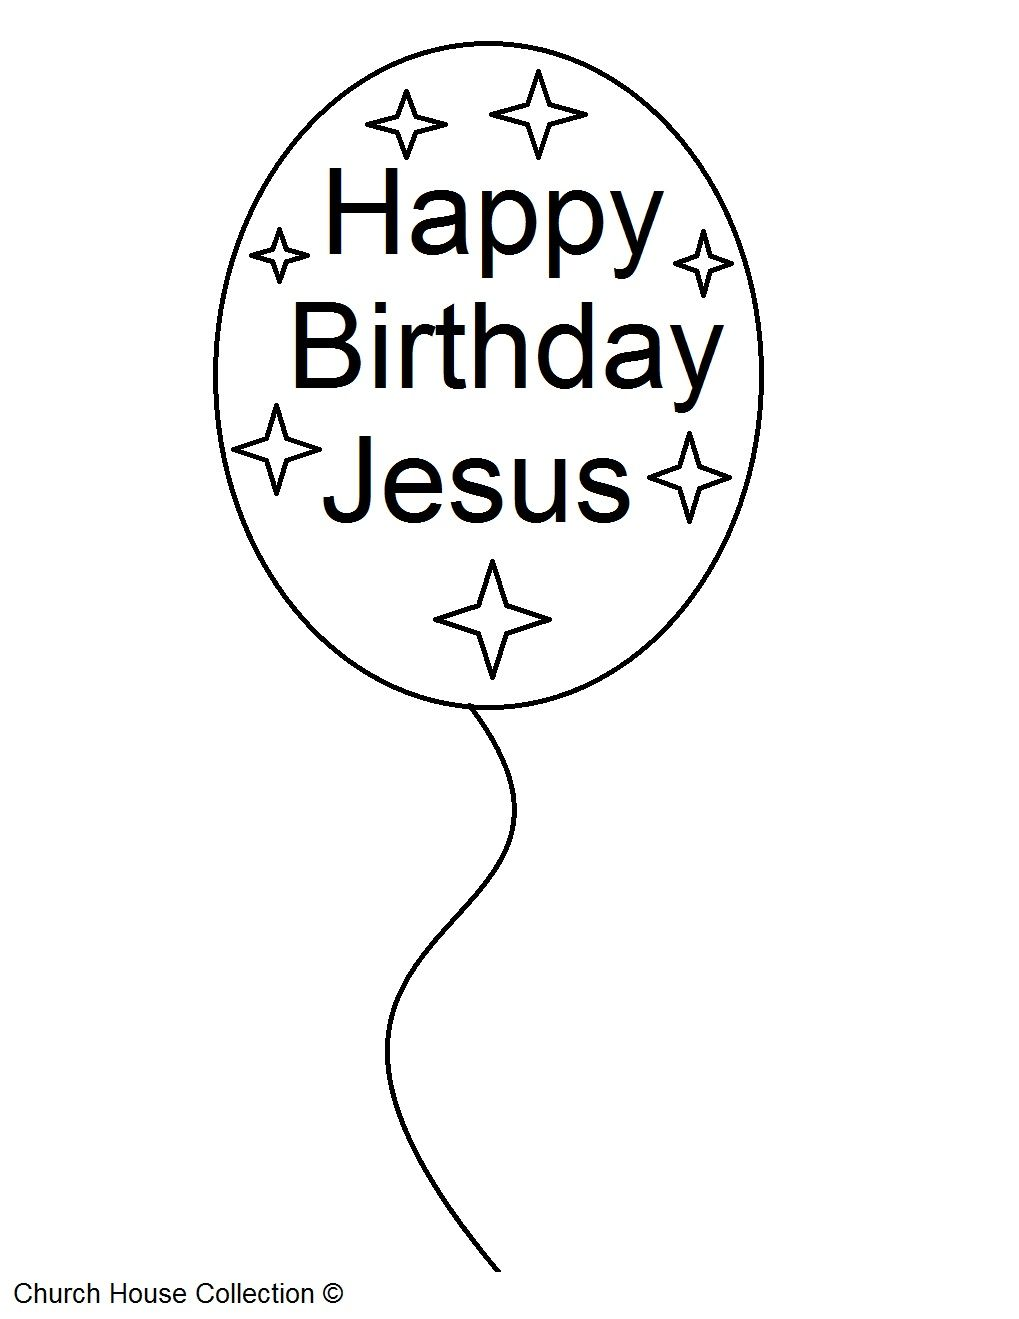 Happy Birthday Jesus Coloring Pages 2jpg 10191319 pixels